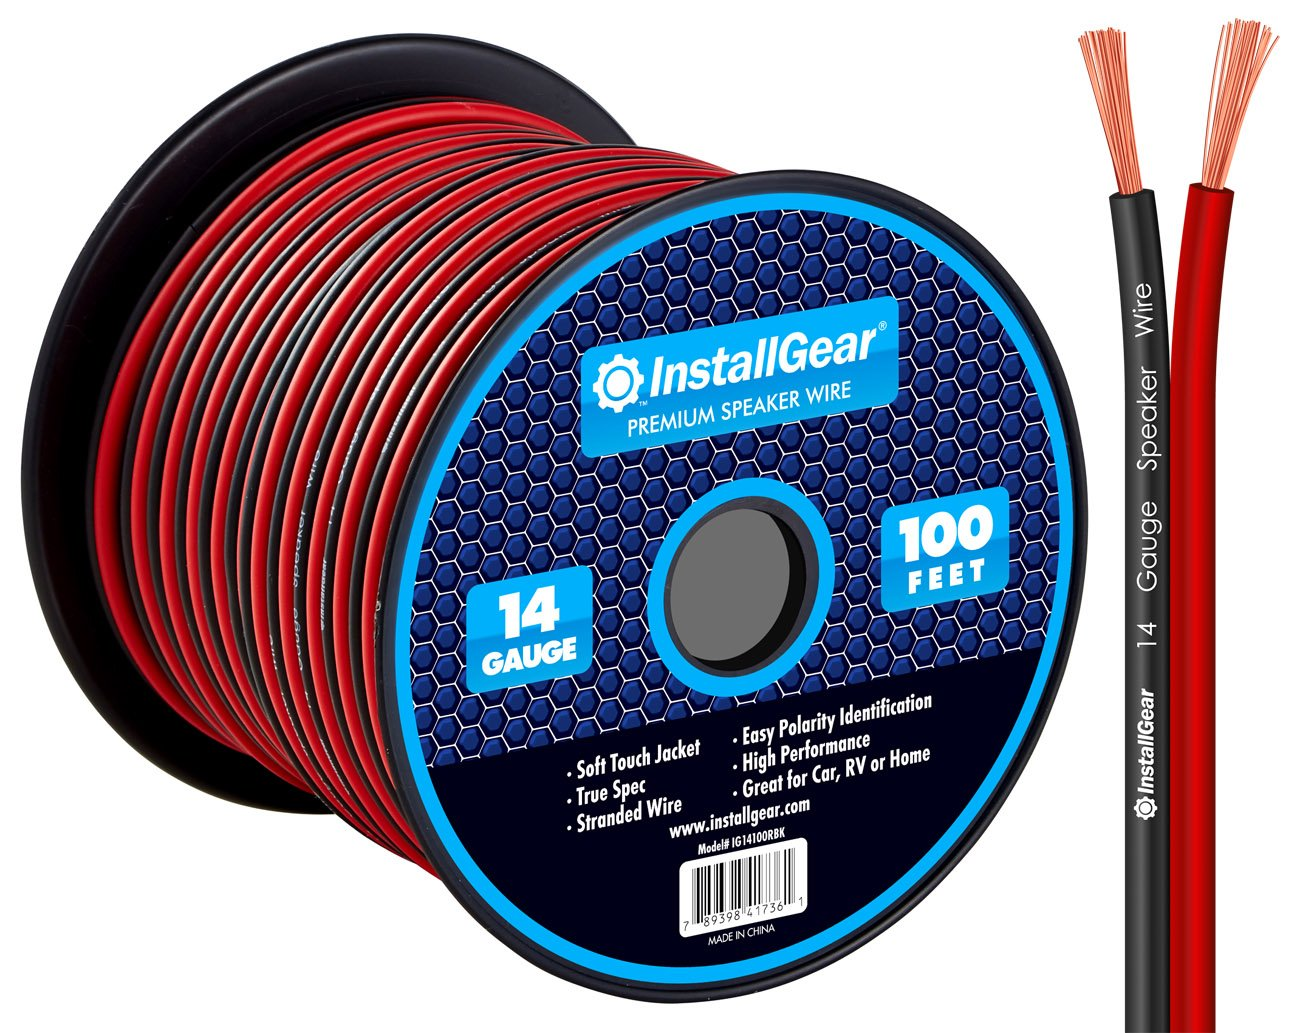 Best Rated In Speaker Cables Helpful Customer Reviews Monster Cable Home Theater Wiring Installgear 14 Gauge Awg 100ft Wire Red Black Product Image